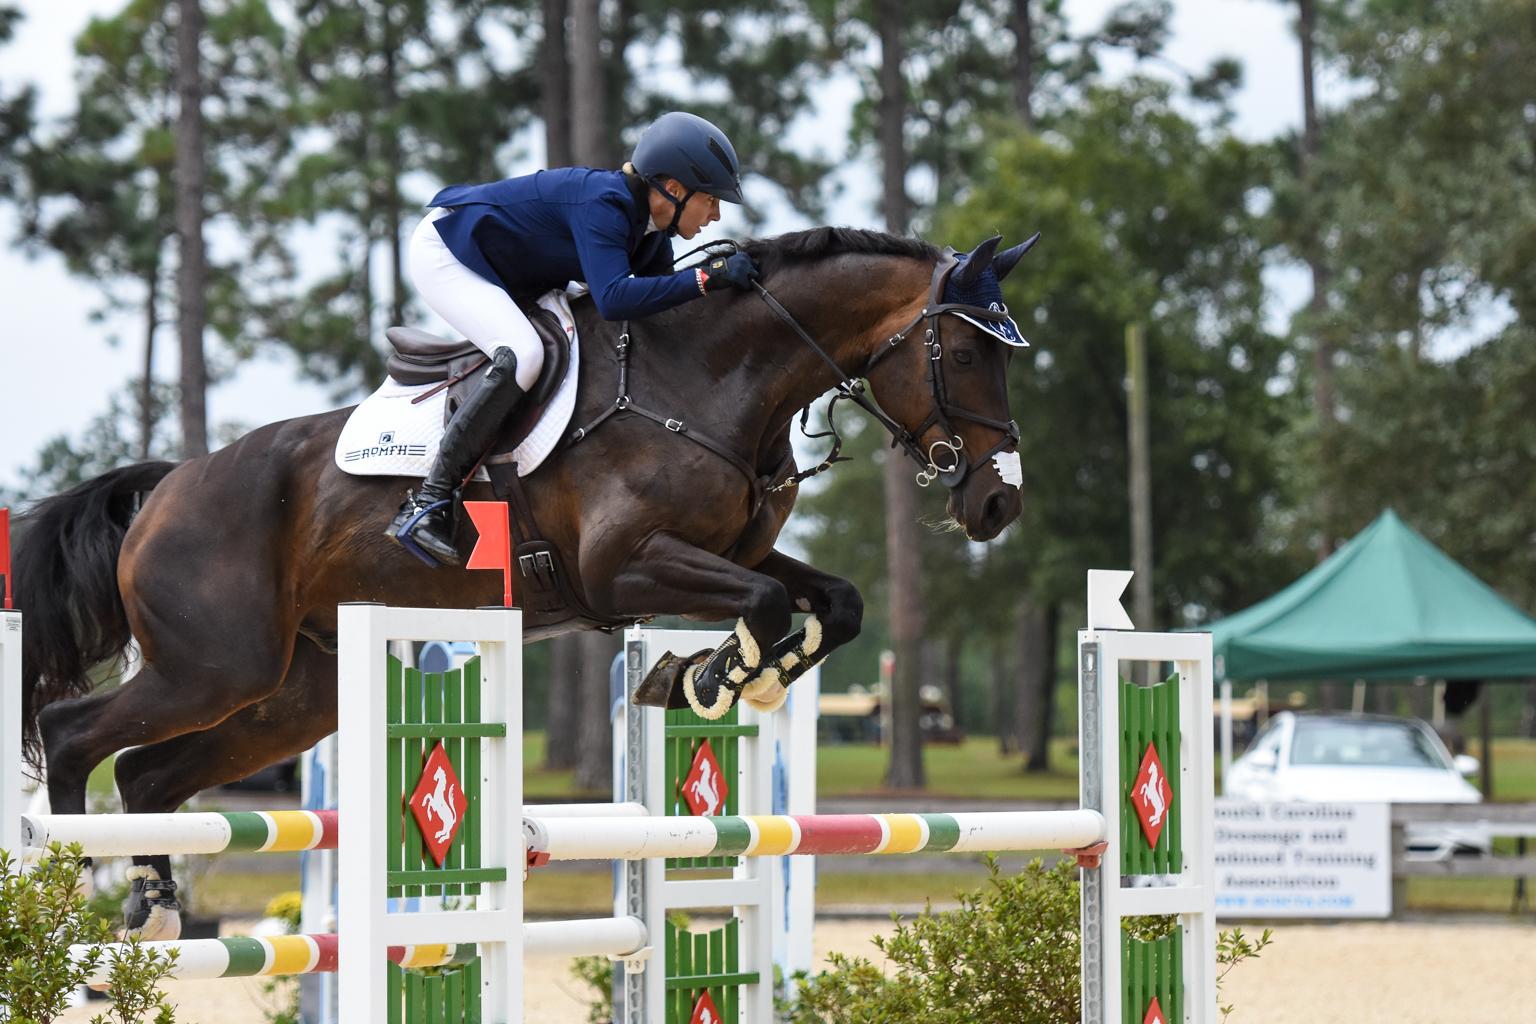 Stable View Oktoberfest: Liz Halliday-Sharp & Fernhill By Night Claim CCI4*-S Show Jumping Lead - Eventing Nation - Three-Day Eventing News, Results, Videos, and Commentary